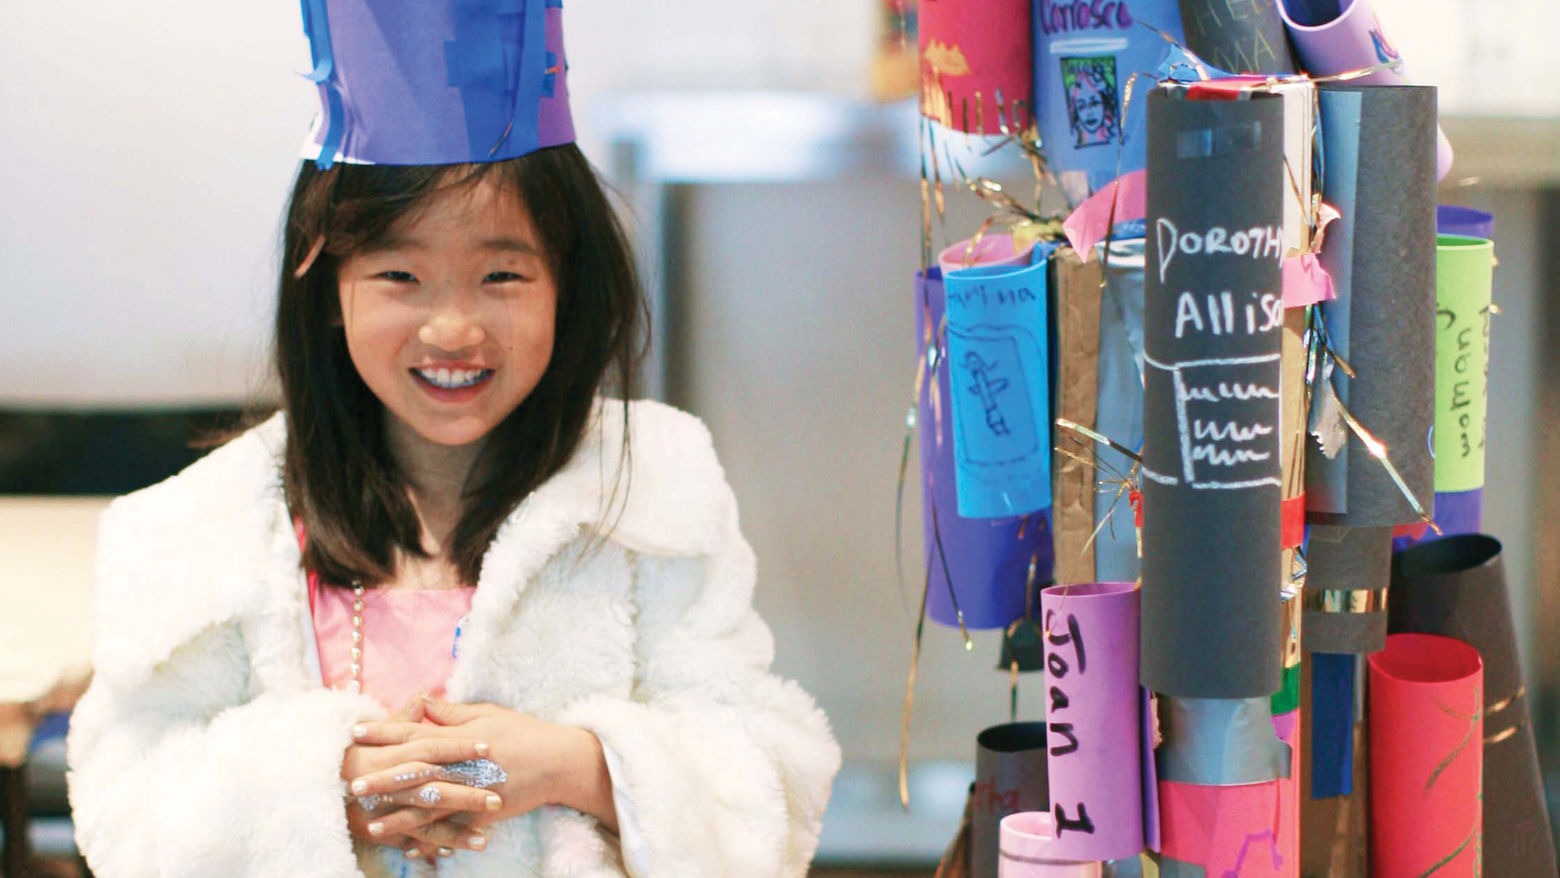 A young girl stands, smiling, wearing a hat made of blue construction paper, a white coat, and silver glitter on her fingers. To the right of her is a structure made of rolls of colored construction paper with words and tinsel.